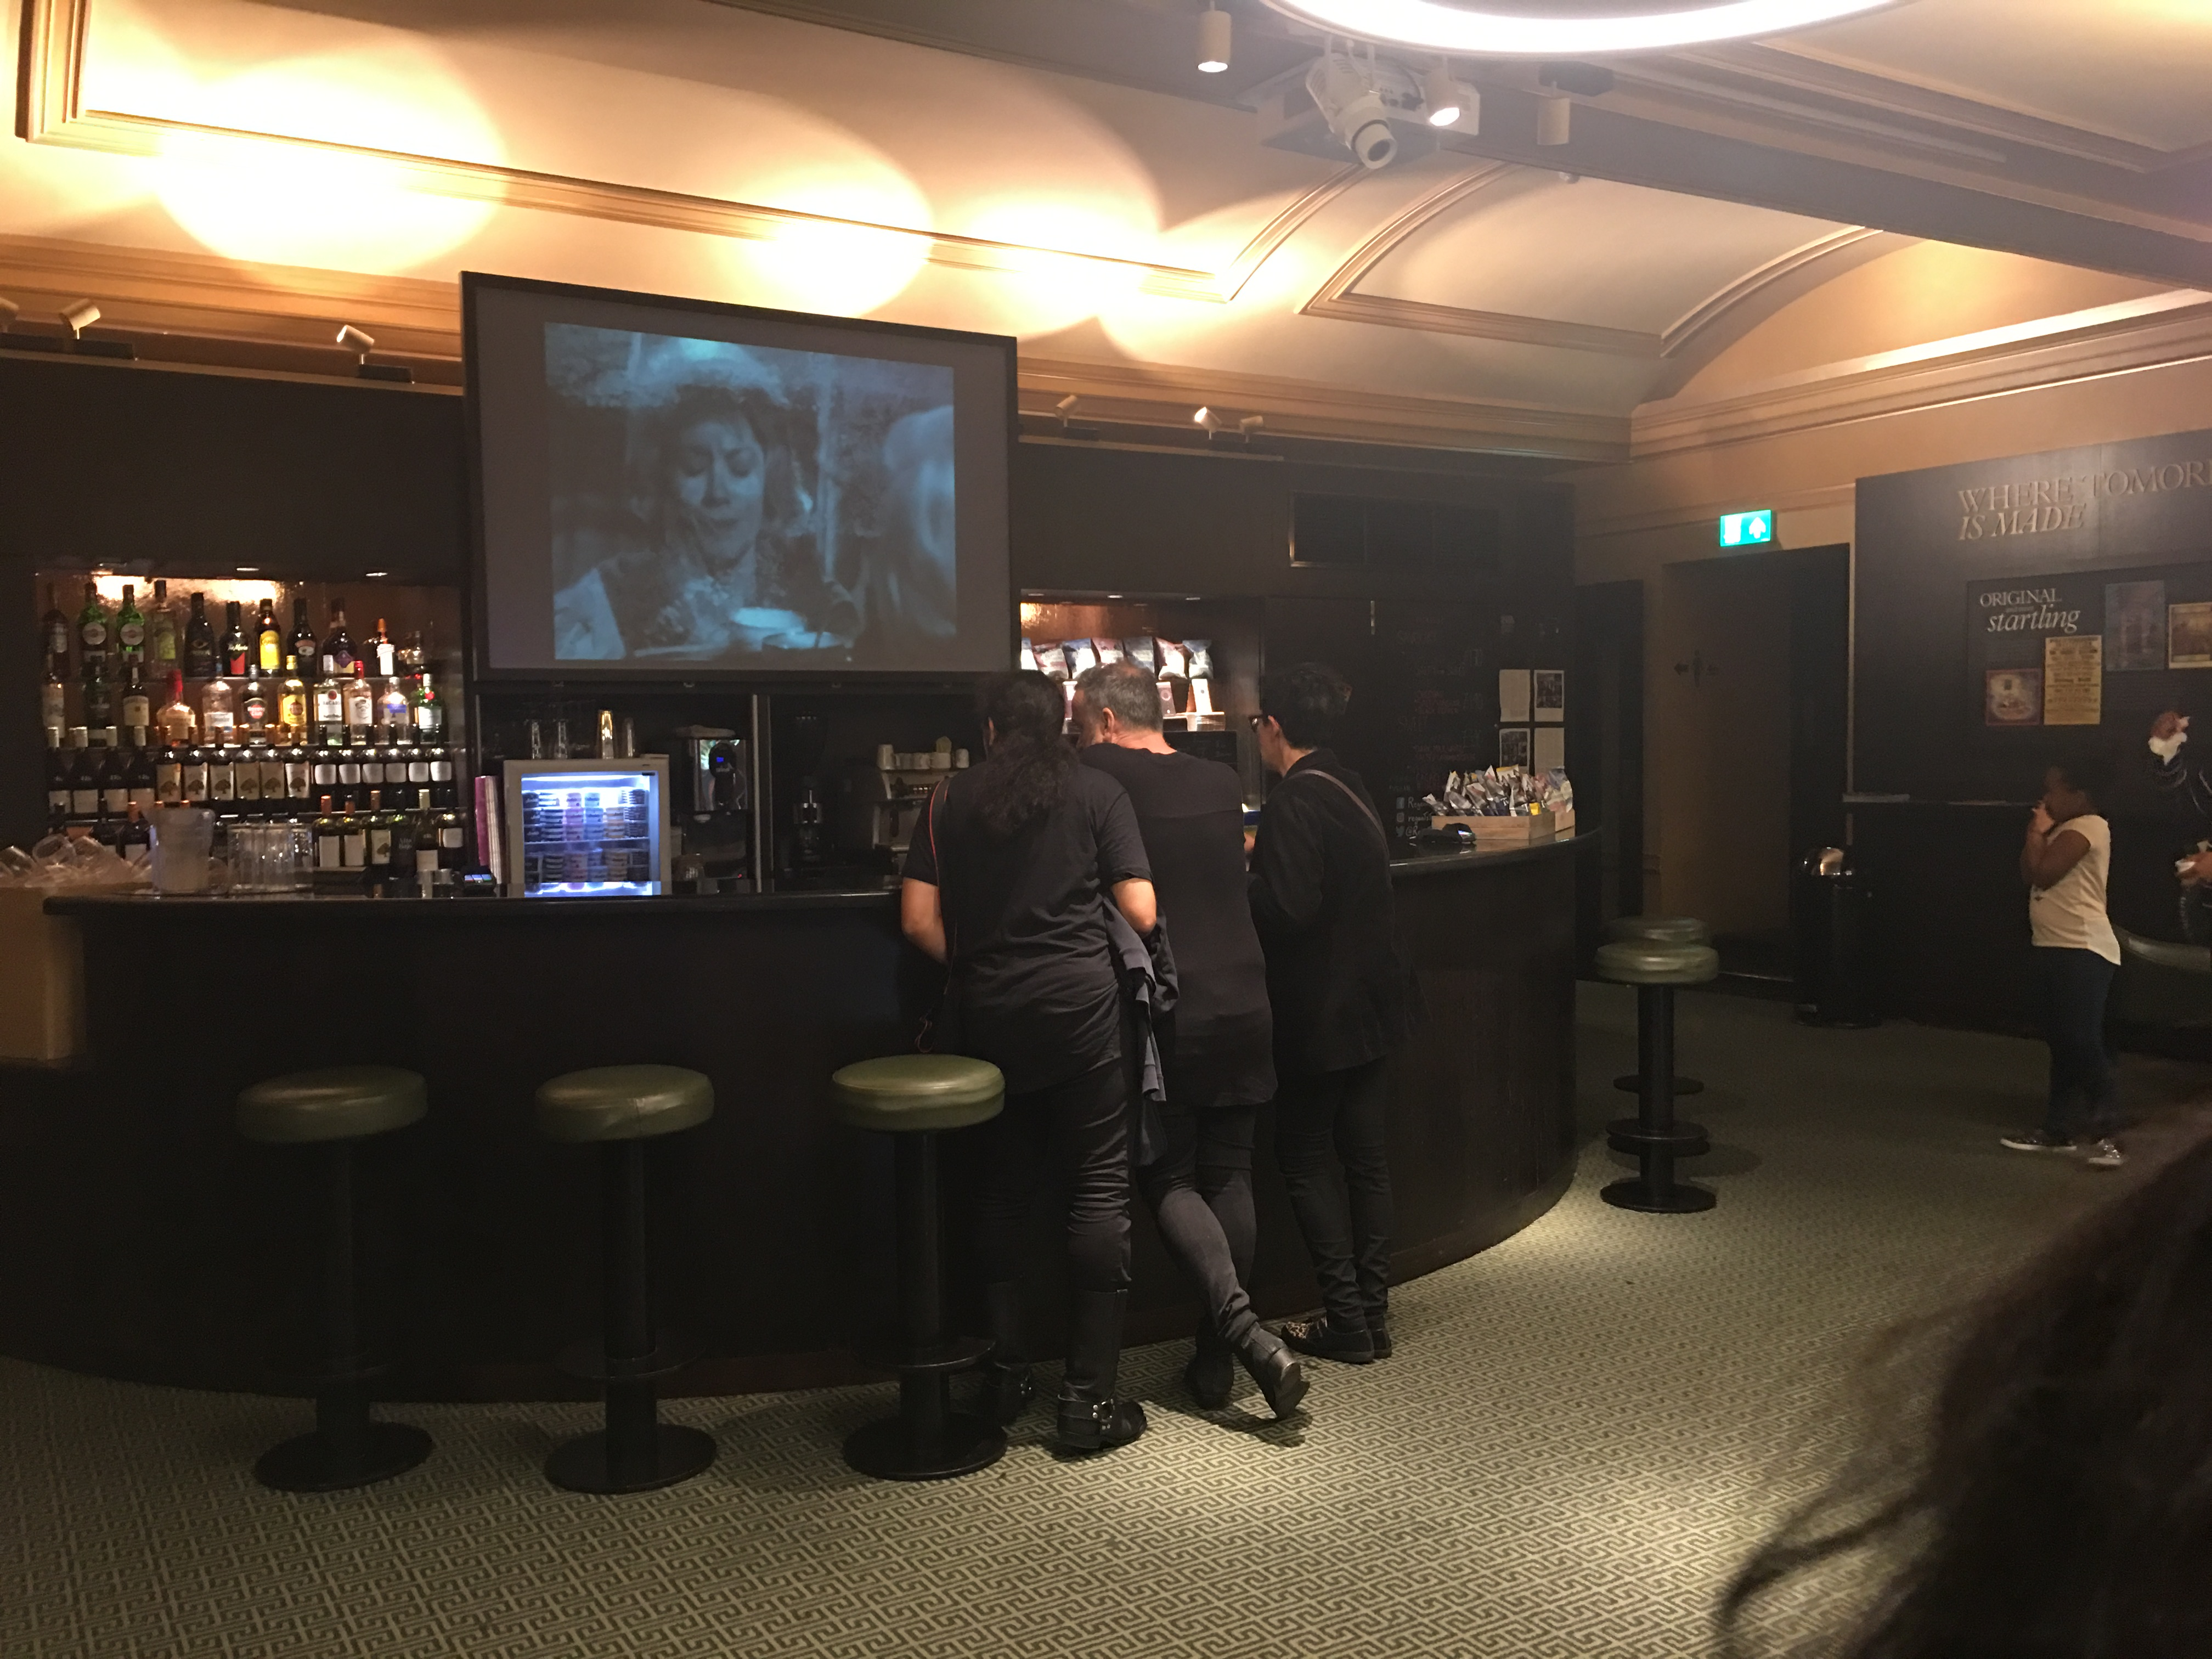 film playing at the cinema bar